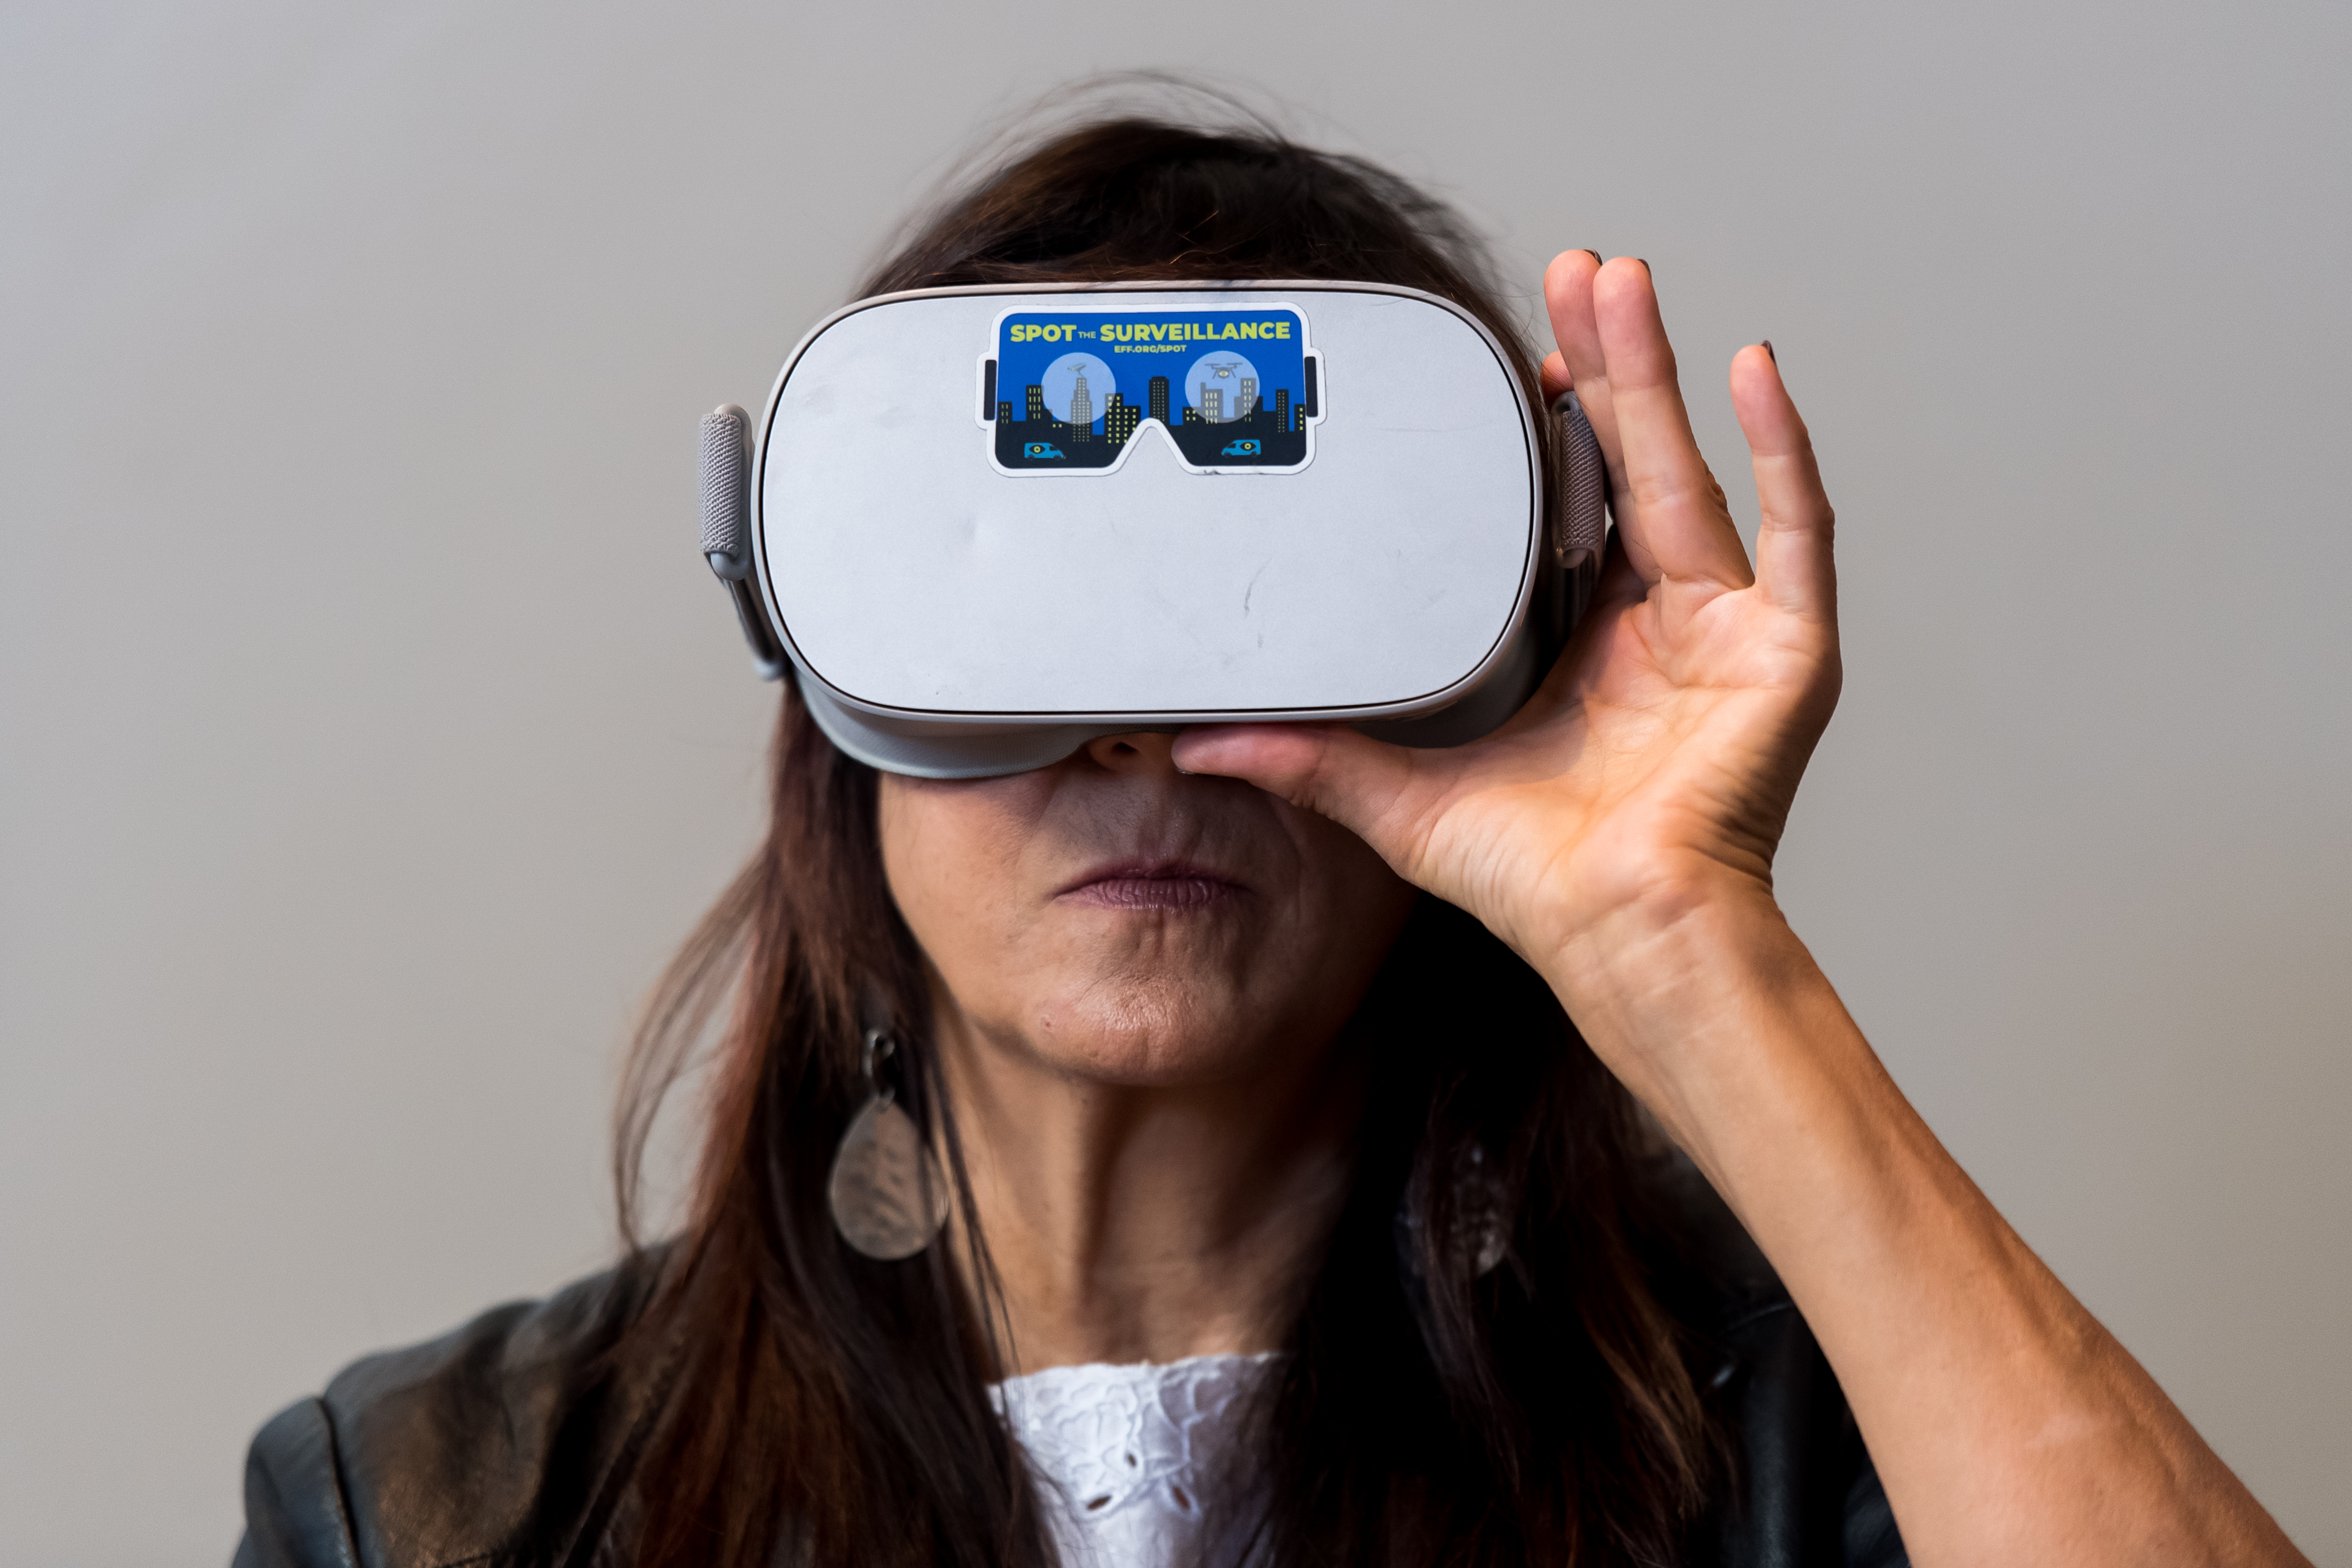 An attendee at the Journalism 360 Immersive Storytelling Festival is experiencing Electronic Frontier Foundation's Spot the Surveillance project through a virtual reality headset.